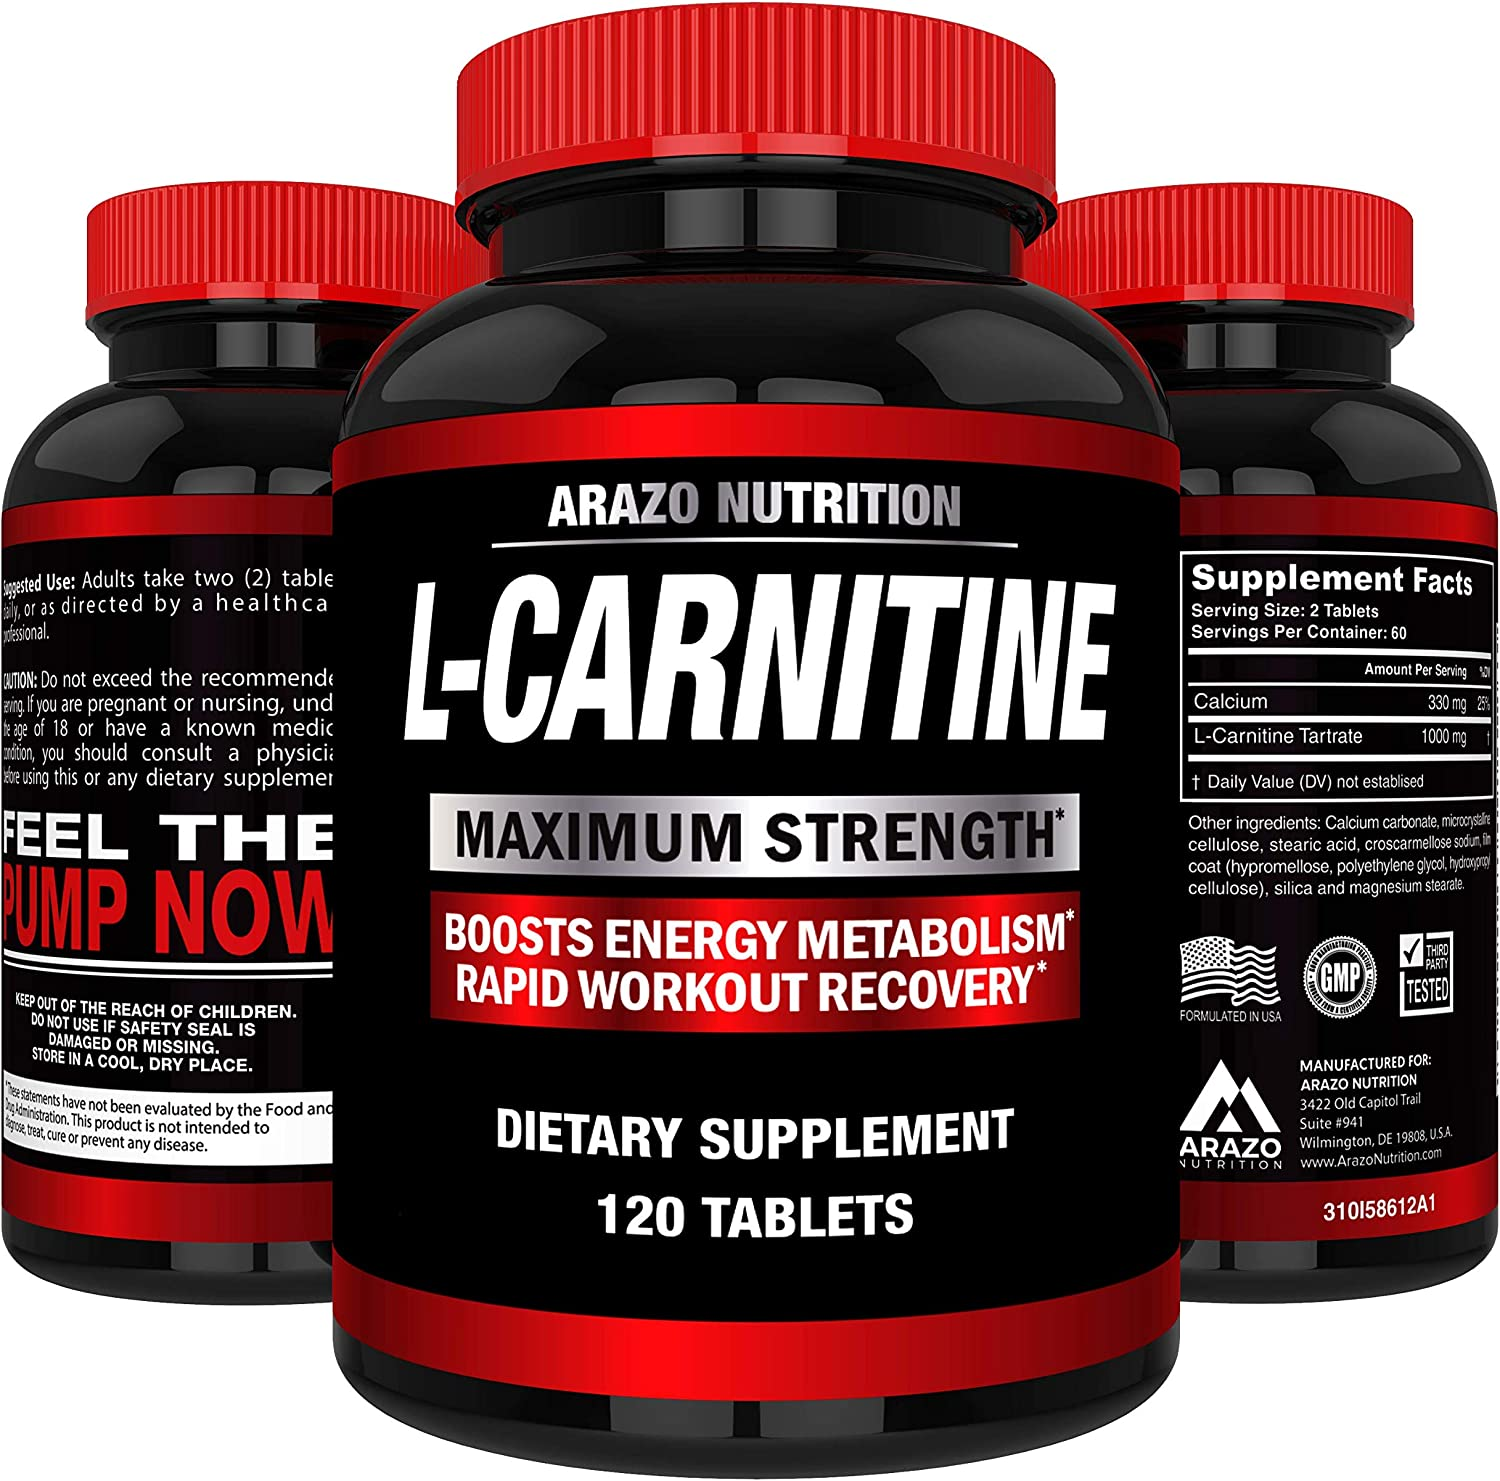 Super Strength L-Carnitine 1000MG Servings Plus Calcium for Boosted Metabolism and Improved Muscle Gain - Arazo Nutrition USA: Health & Personal Care